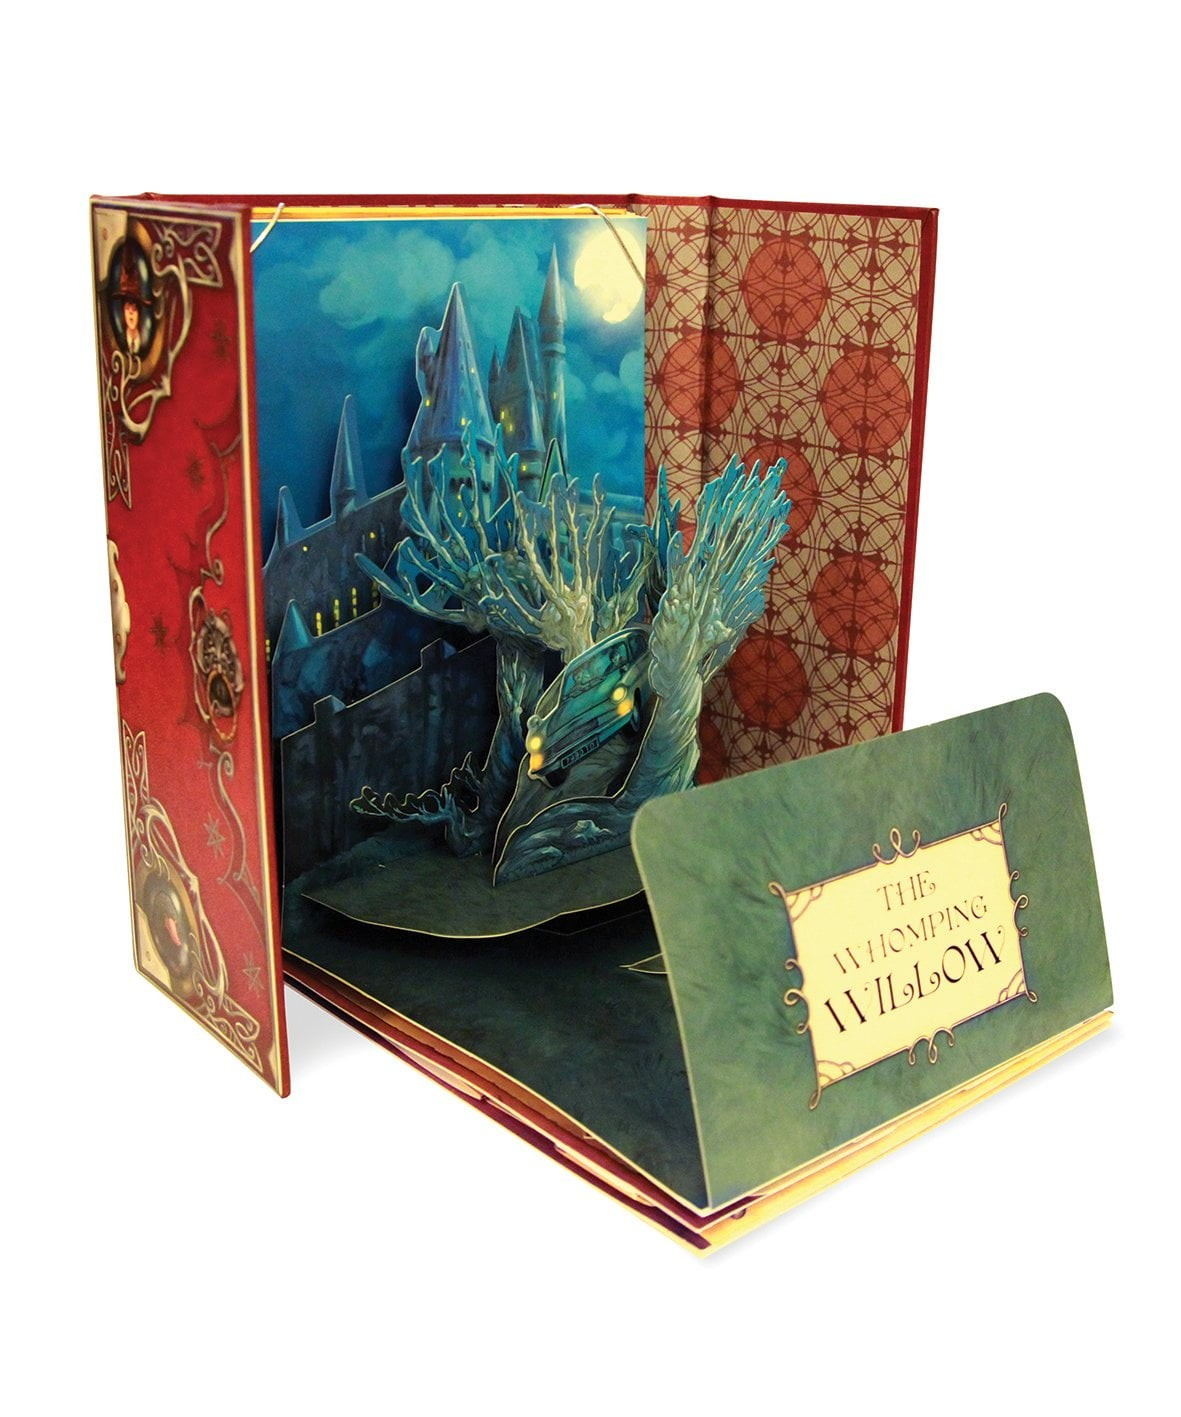 j.k. rowling's wizarding world - a pop-up gallery of curiosities